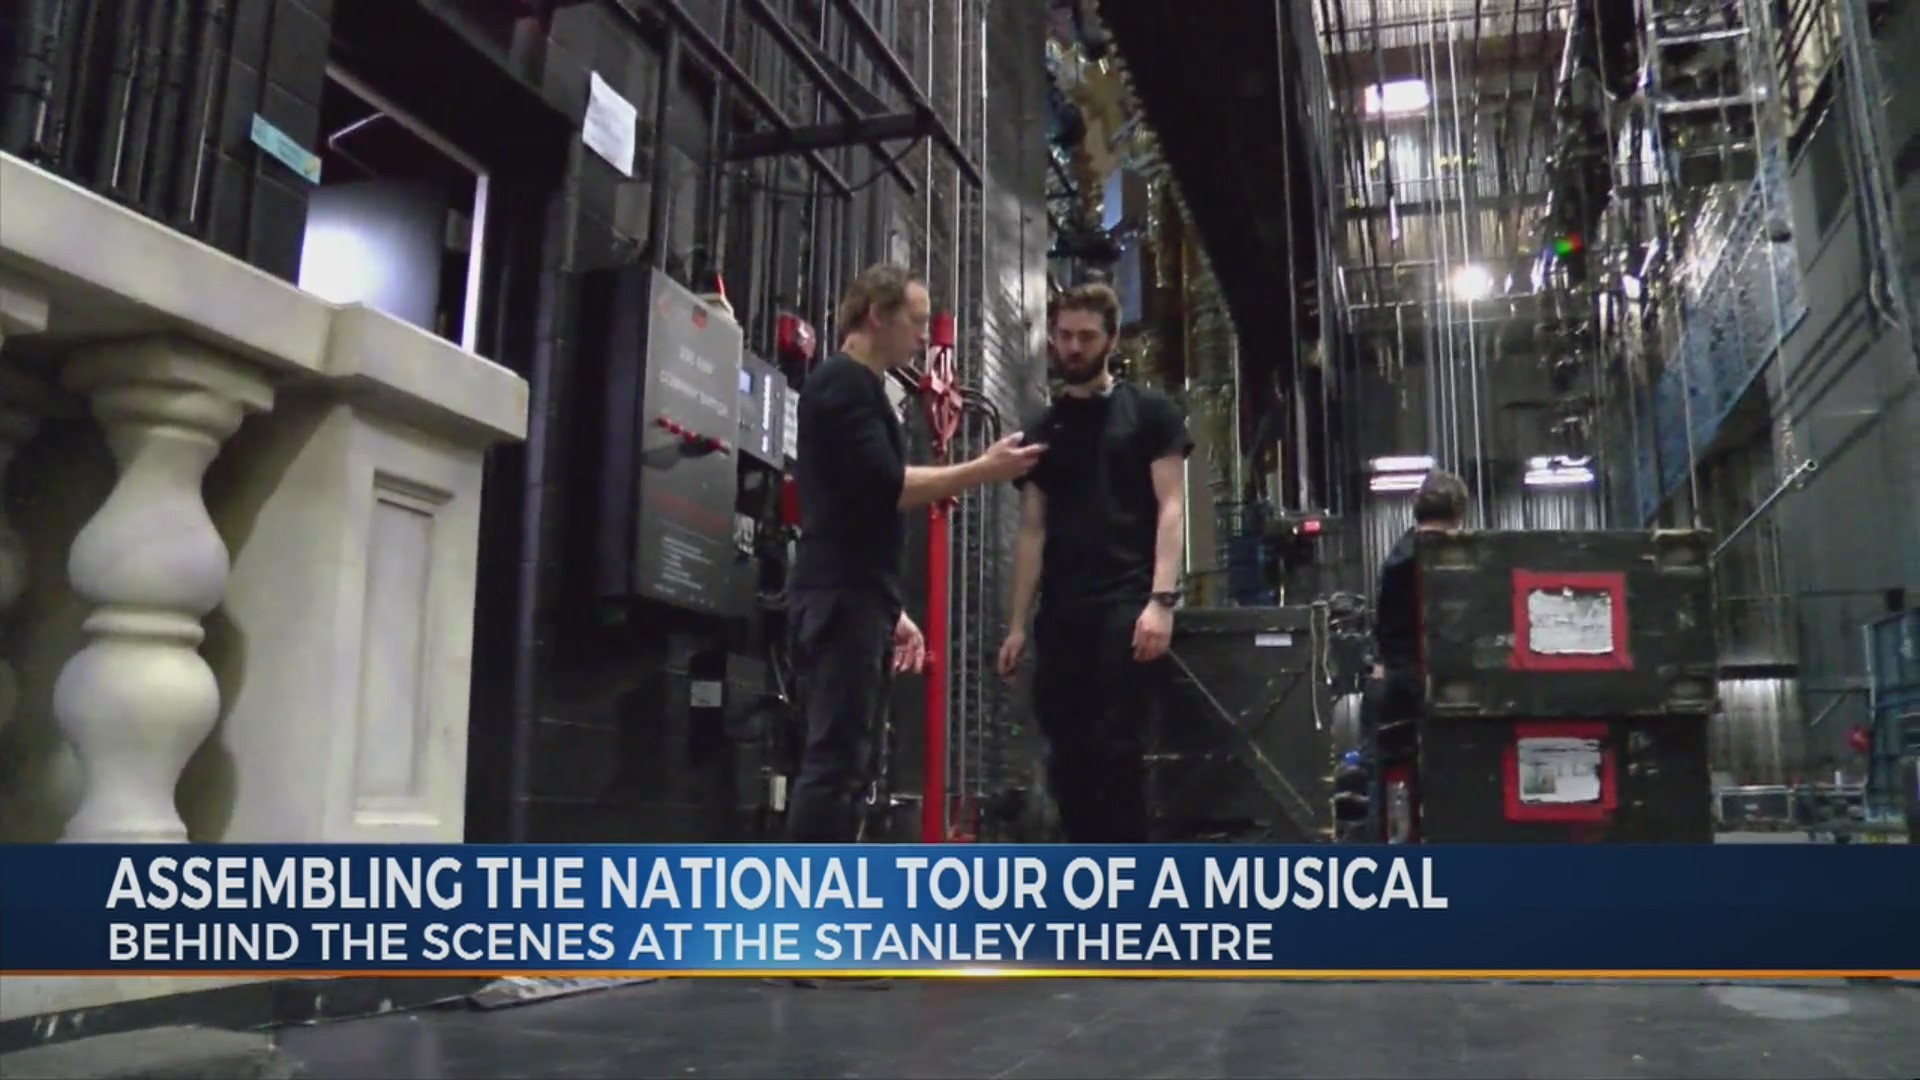 Assembling The National Tour Of A Musical